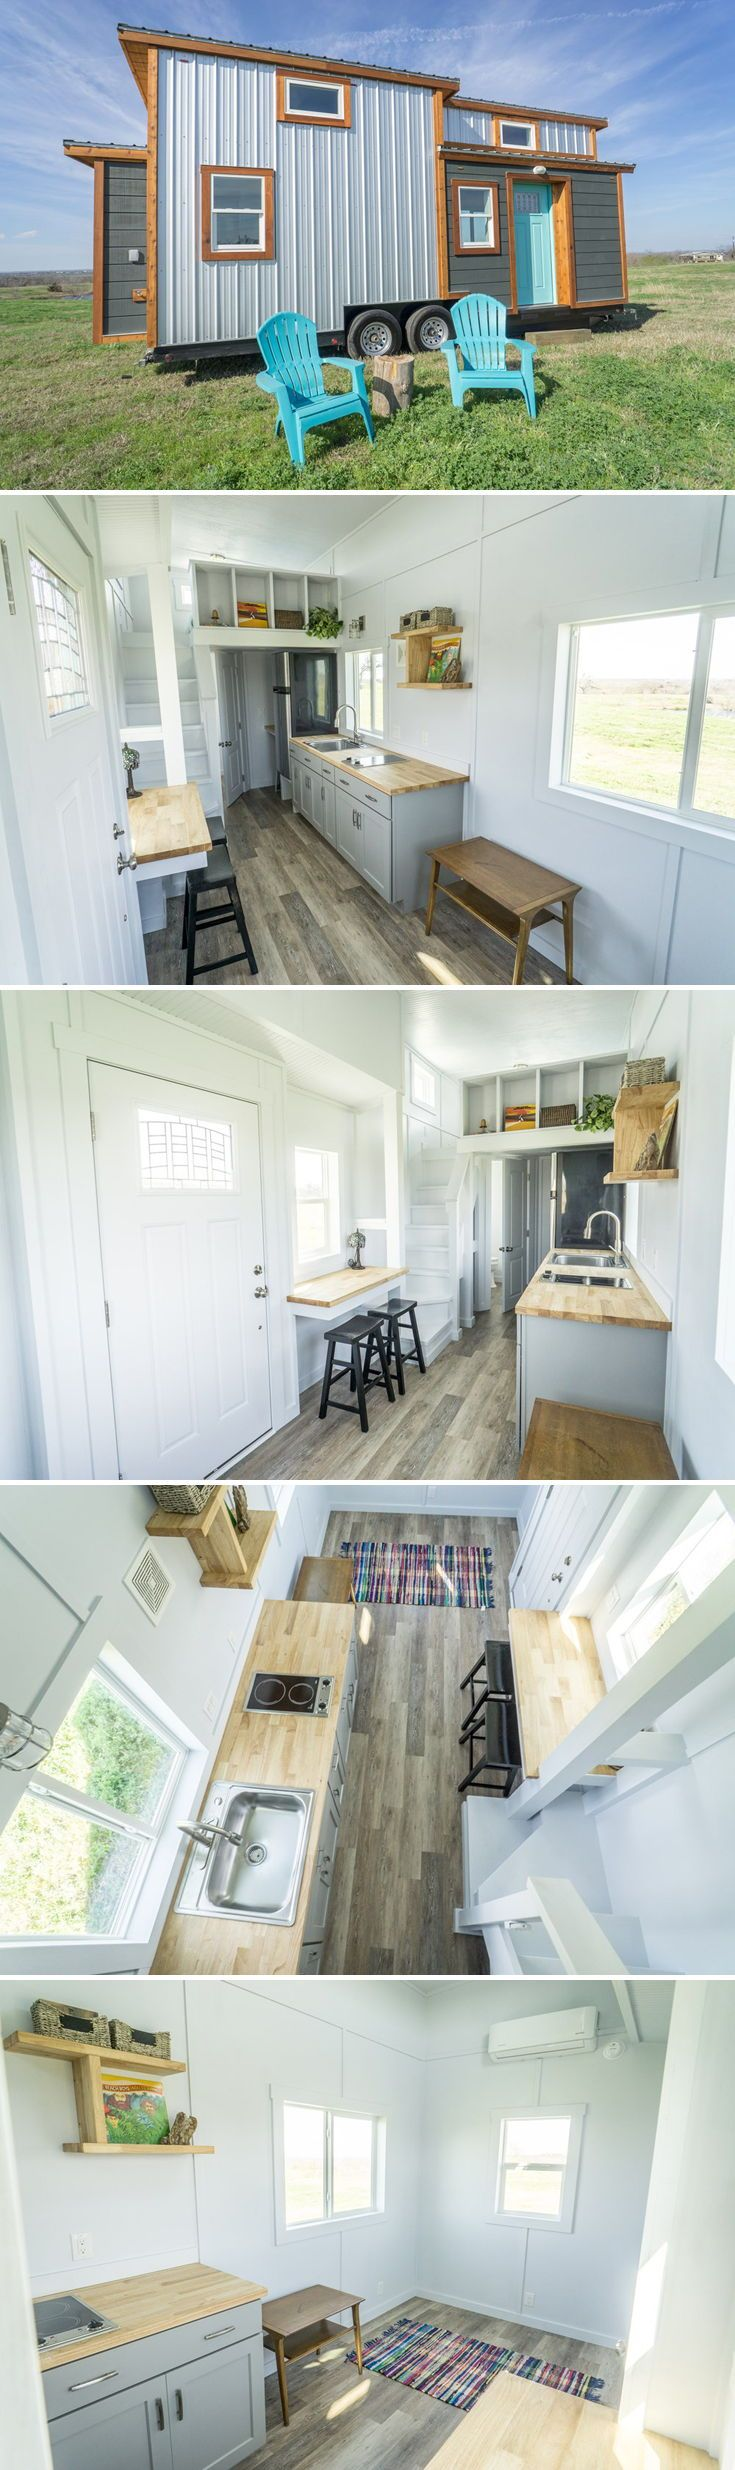 1448 best Tiny House Living images on Pinterest